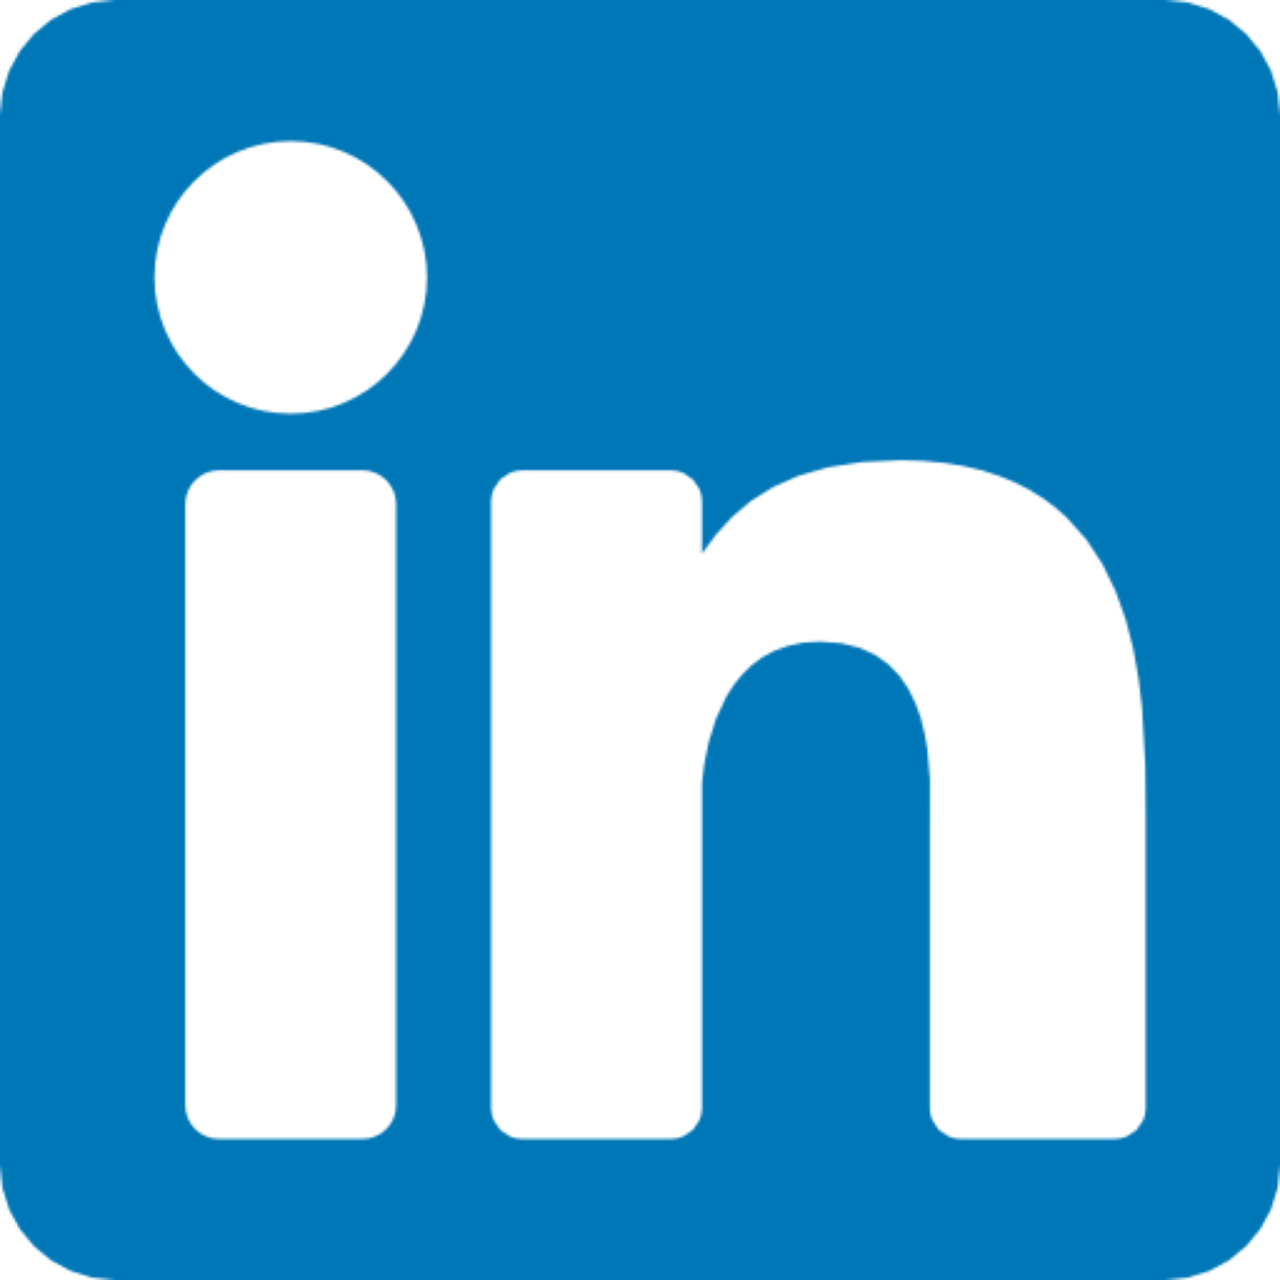 LinkedIn Marketing Ideas to Generate Leads